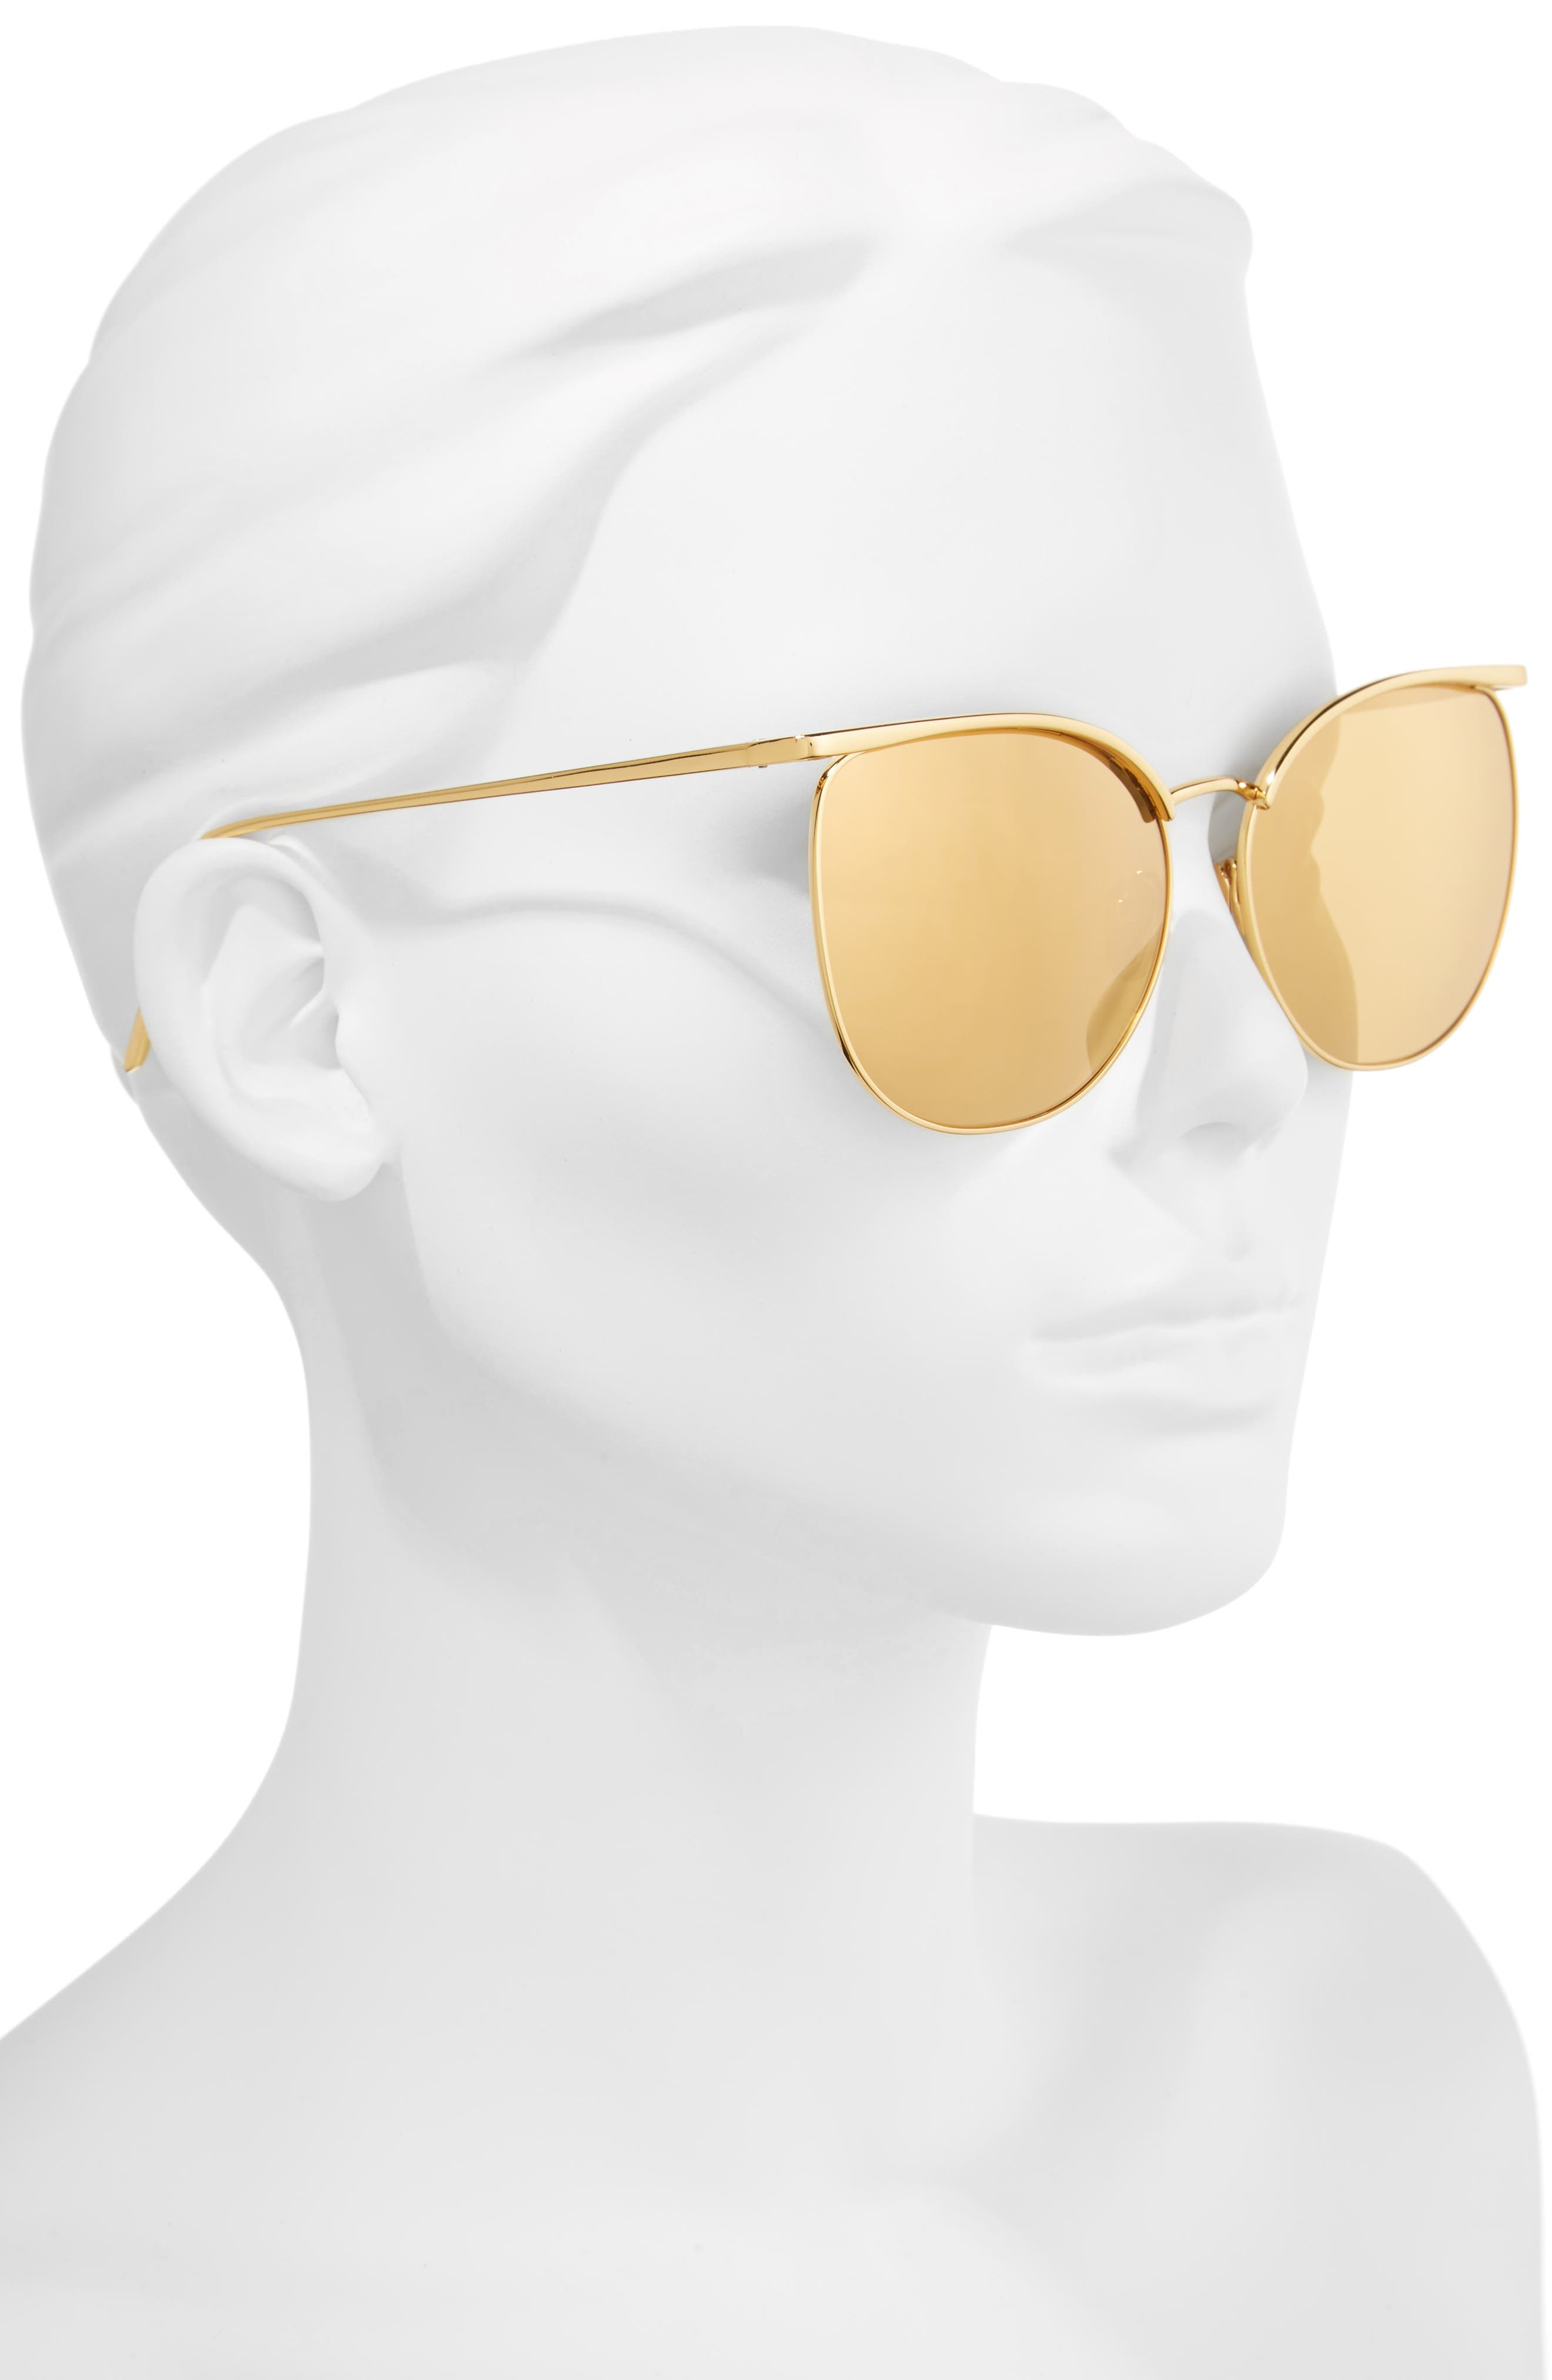 59mm Mirrored 22 Karat Gold Trim Sunglasses,                             Alternate thumbnail 2, color,                             710